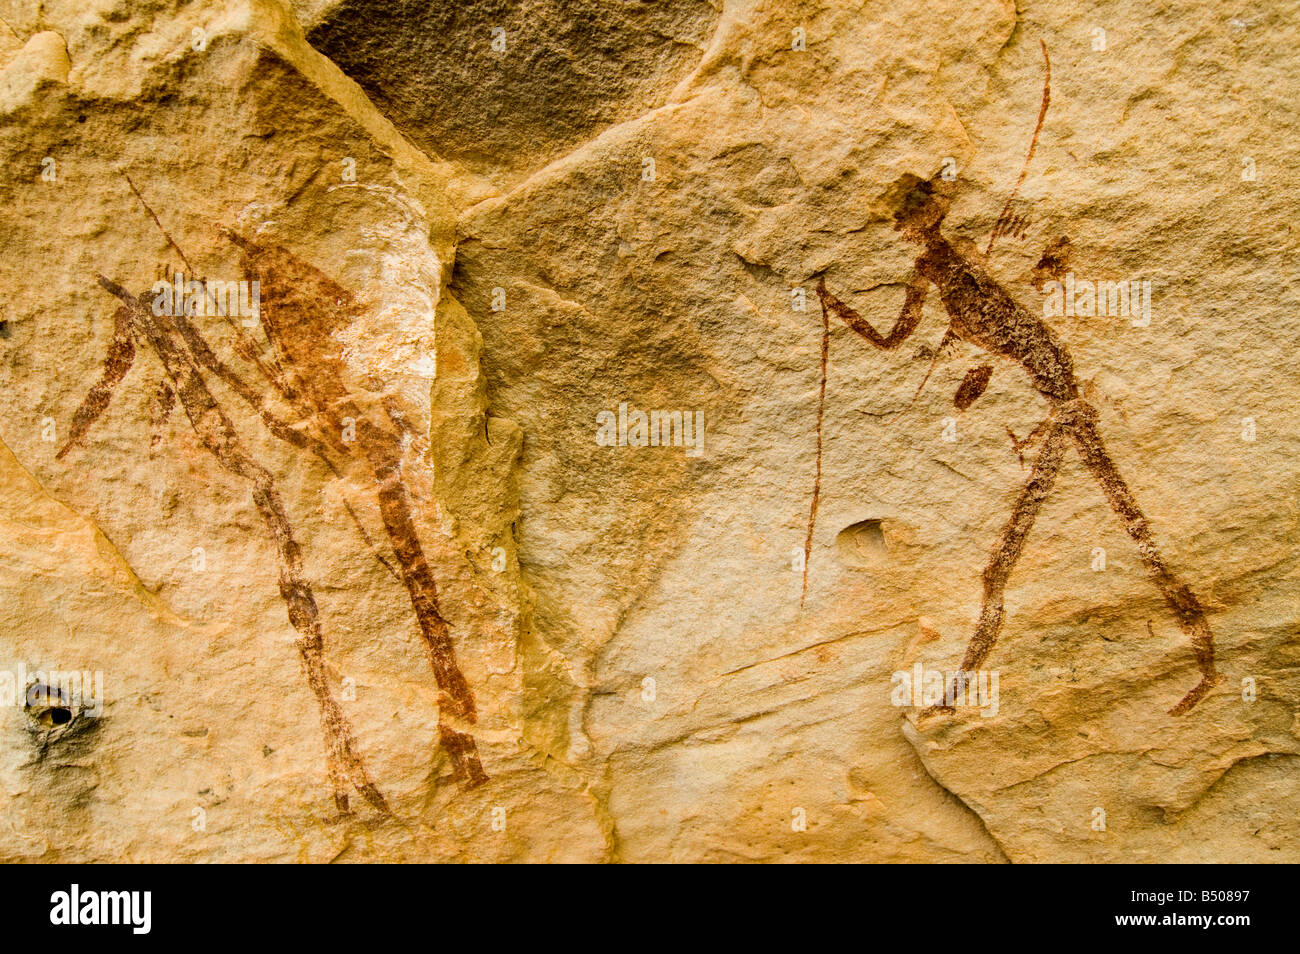 Bushman, Mural painting, Ladybrand, Free State, South Africa - Stock Image